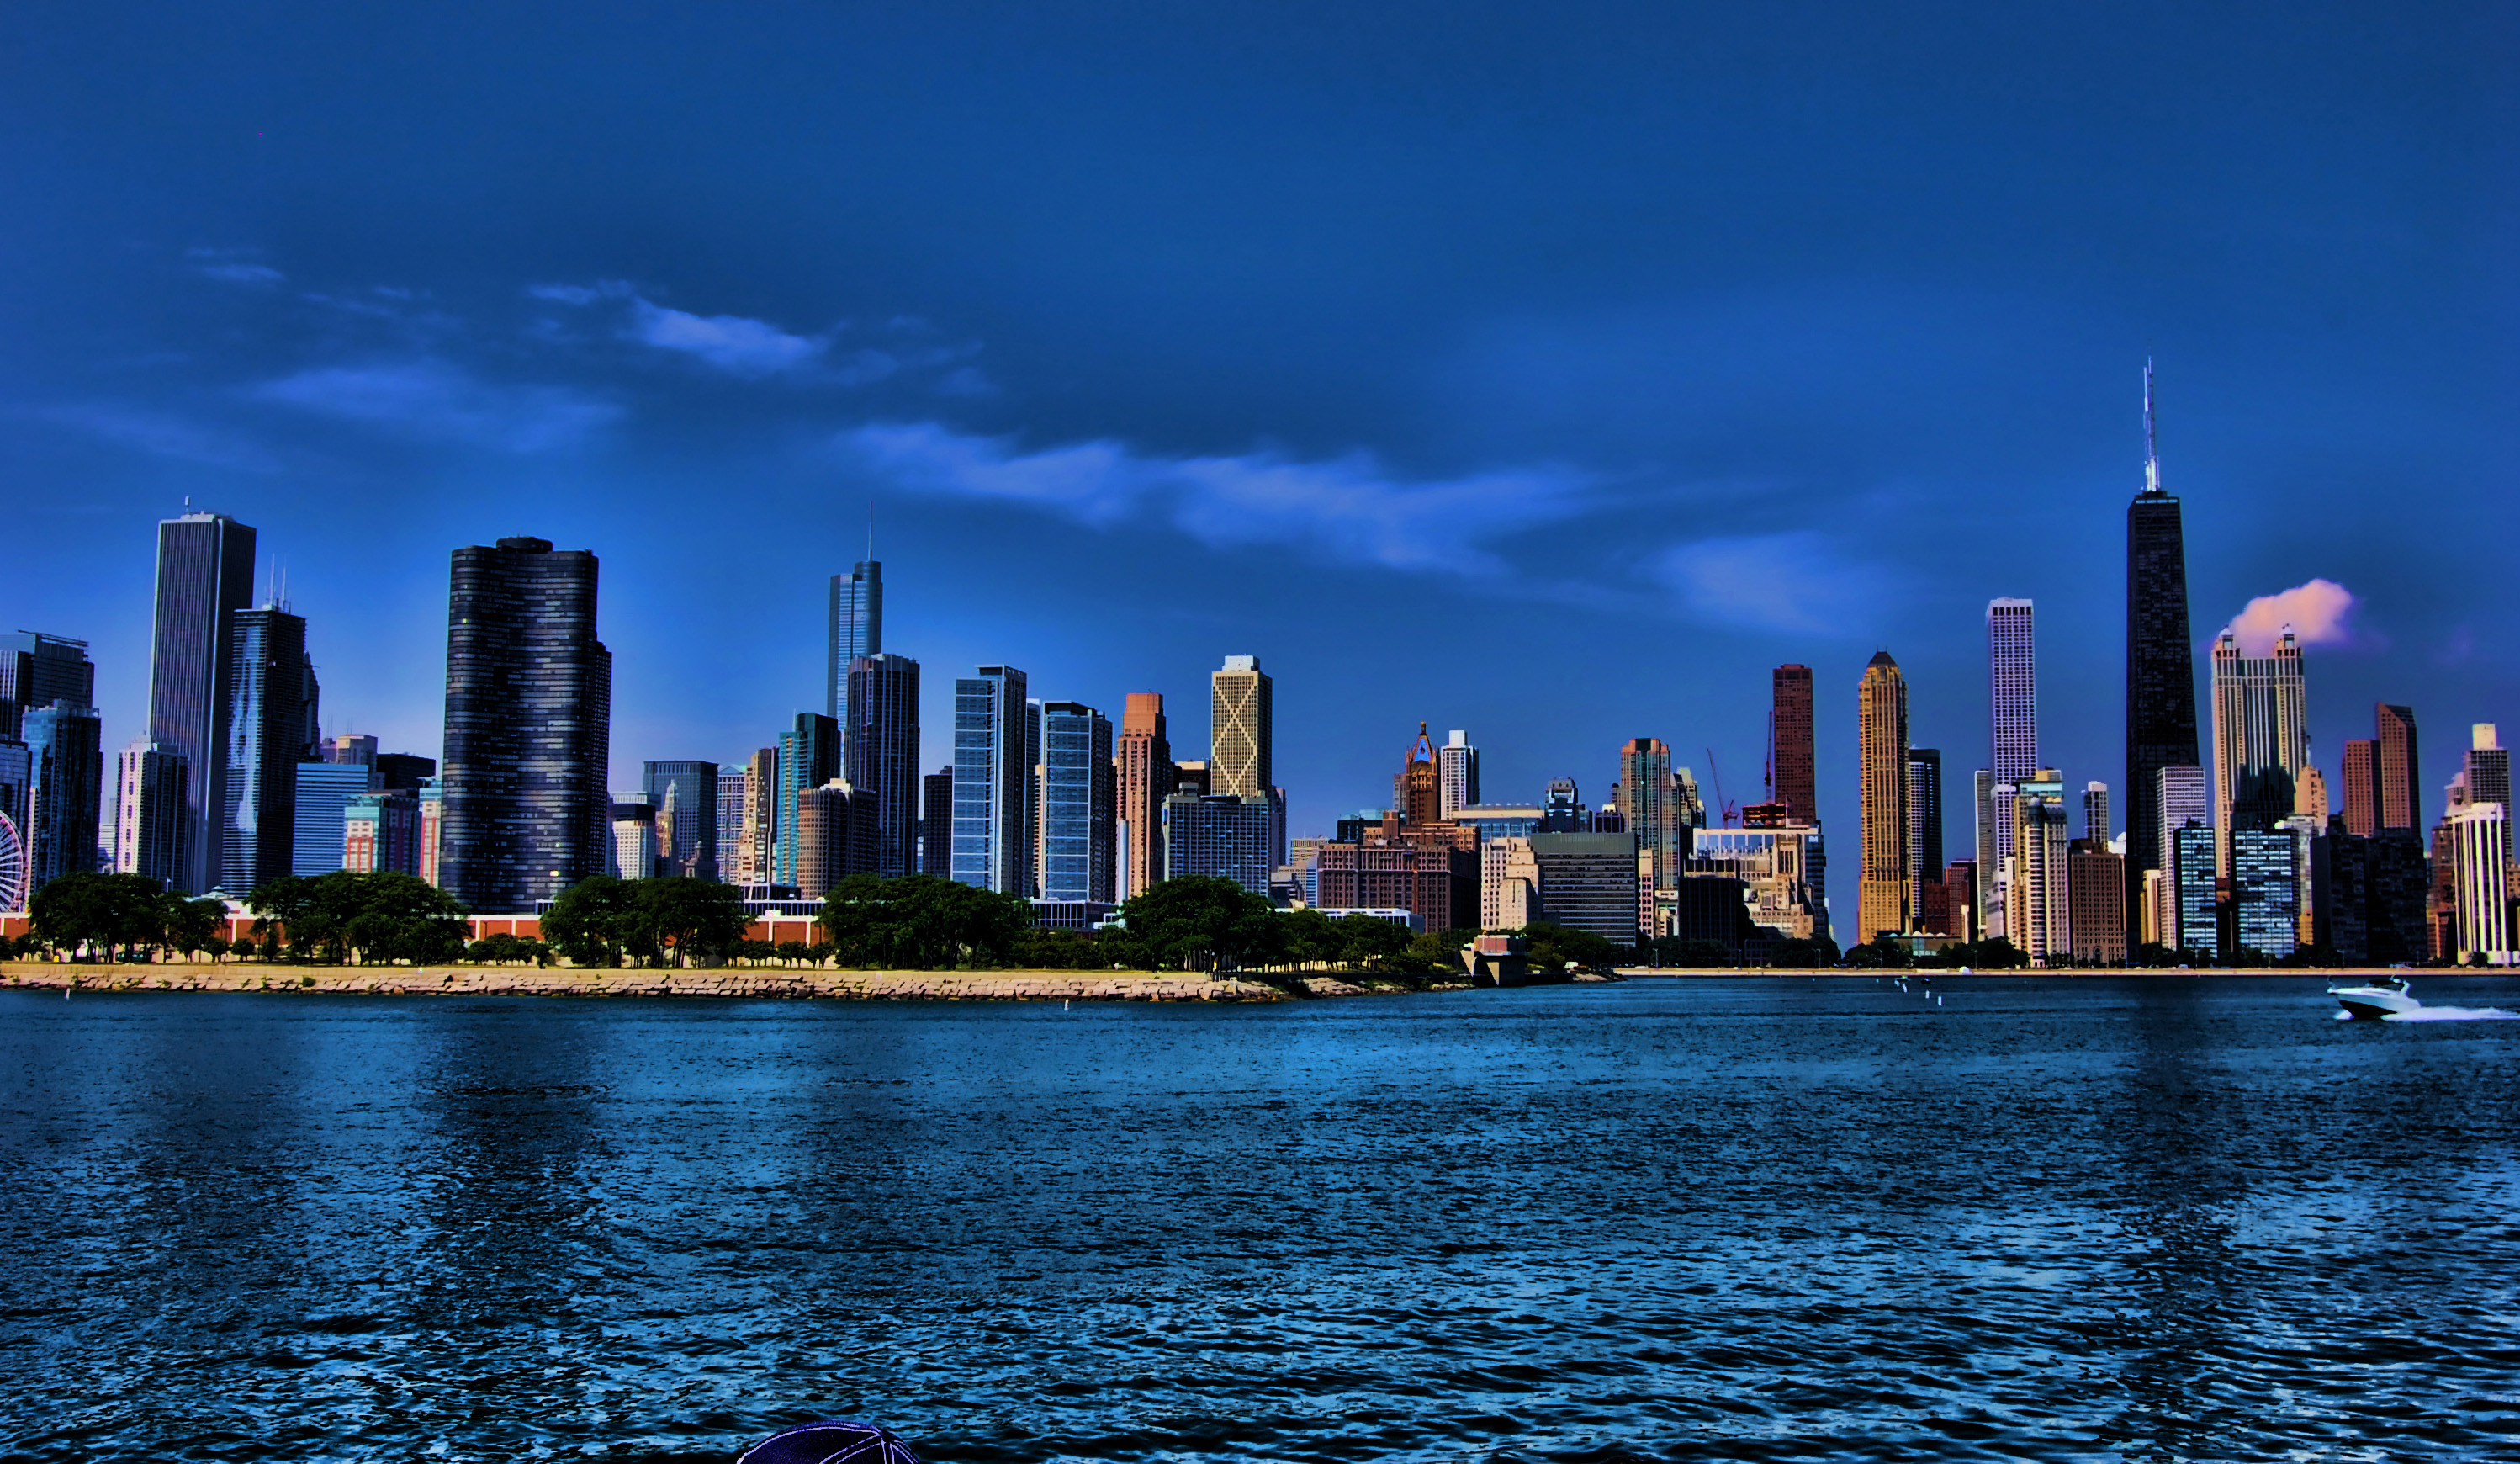 Illinois Chicago wallpaper 2996x1740 128184 WallpaperUP 2996x1740